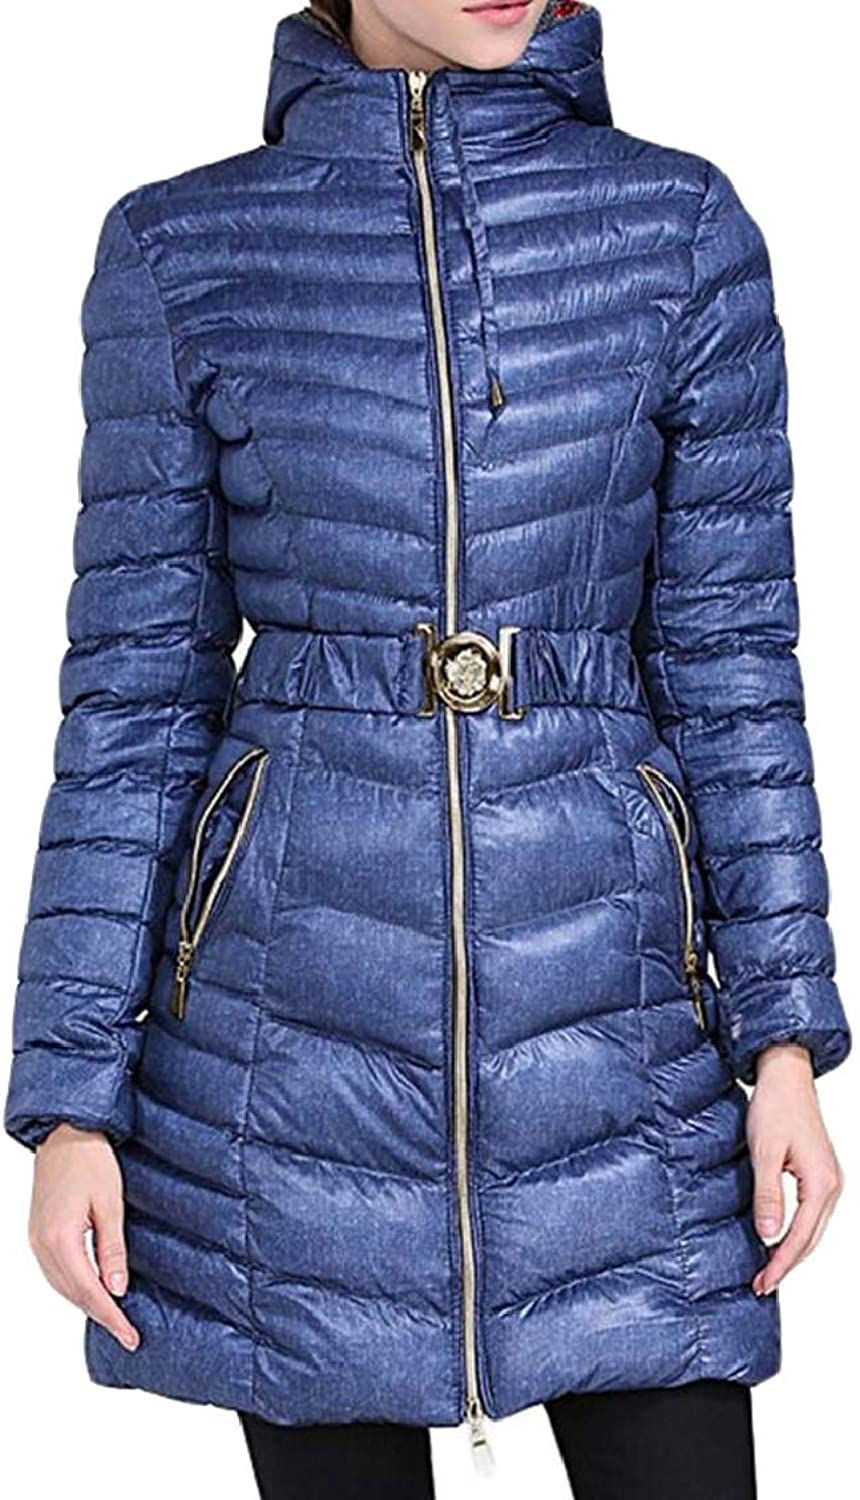 Jxfd Women's Winter Warm Hooded Down Coat Puffer Parka Jacket Coat